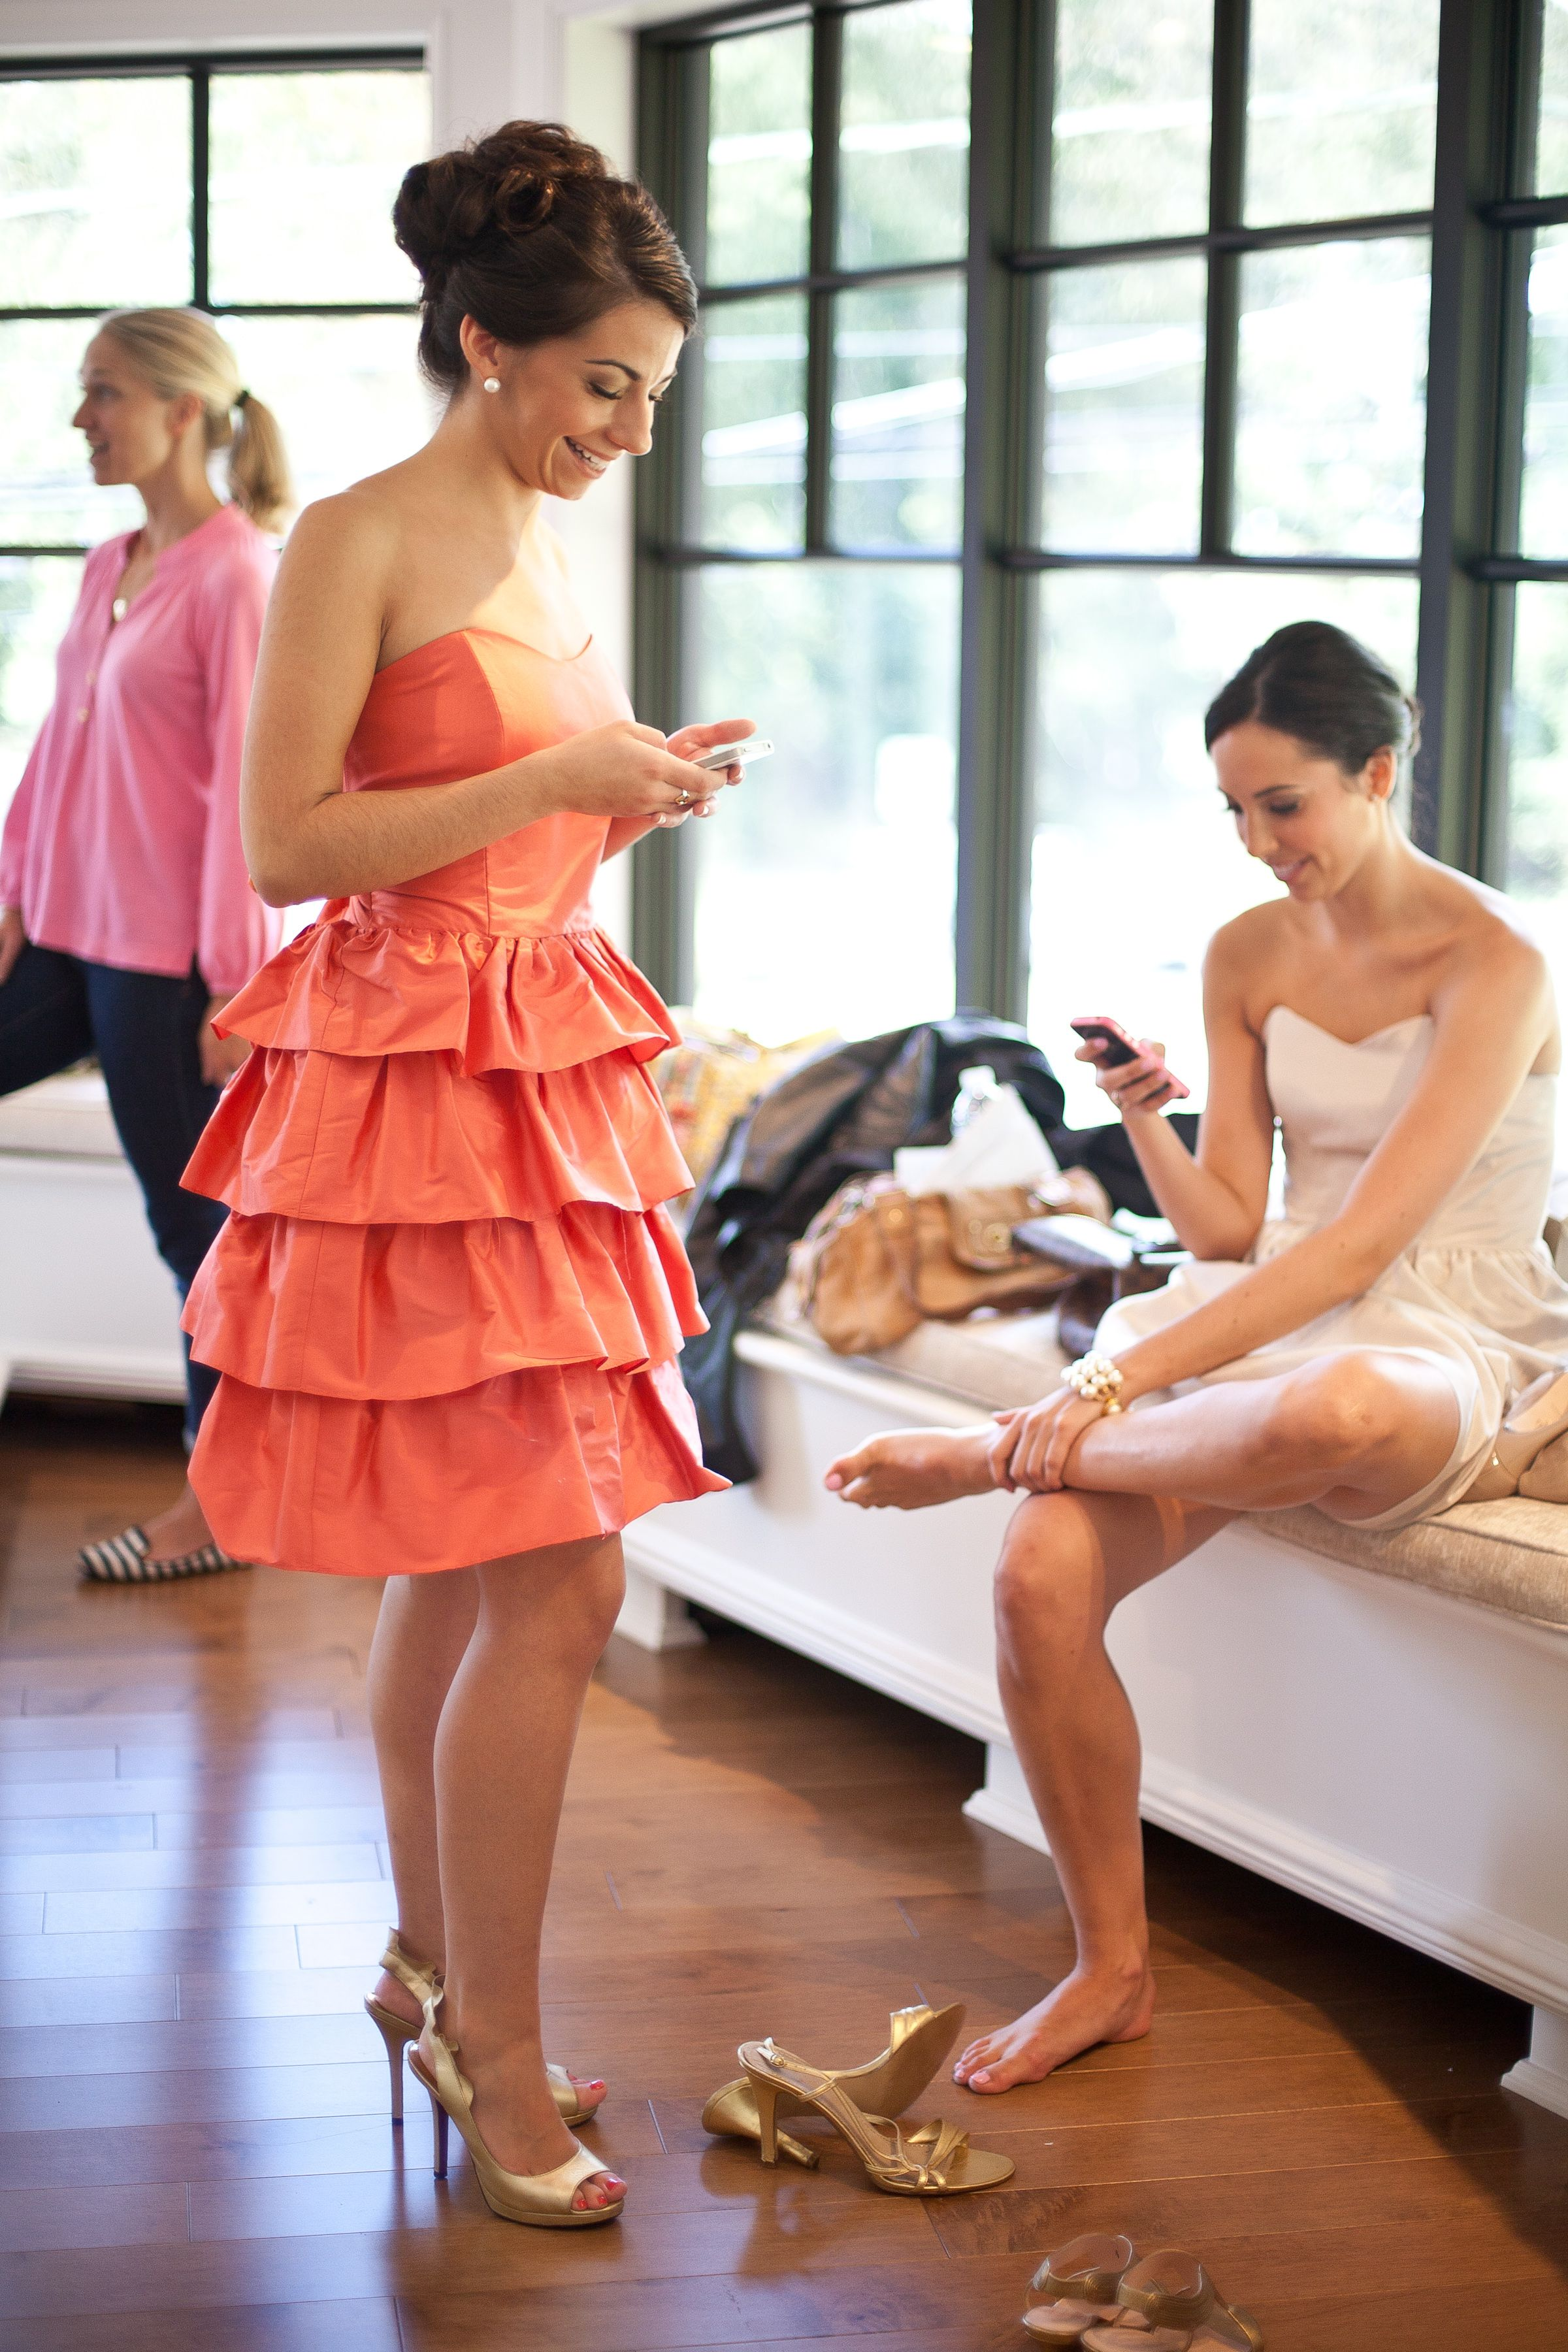 Behind the scenes with Coren  Dresses: Anna, mango silk shantung & Laurie, pebble faille  Photographer: Jacqueline Patton